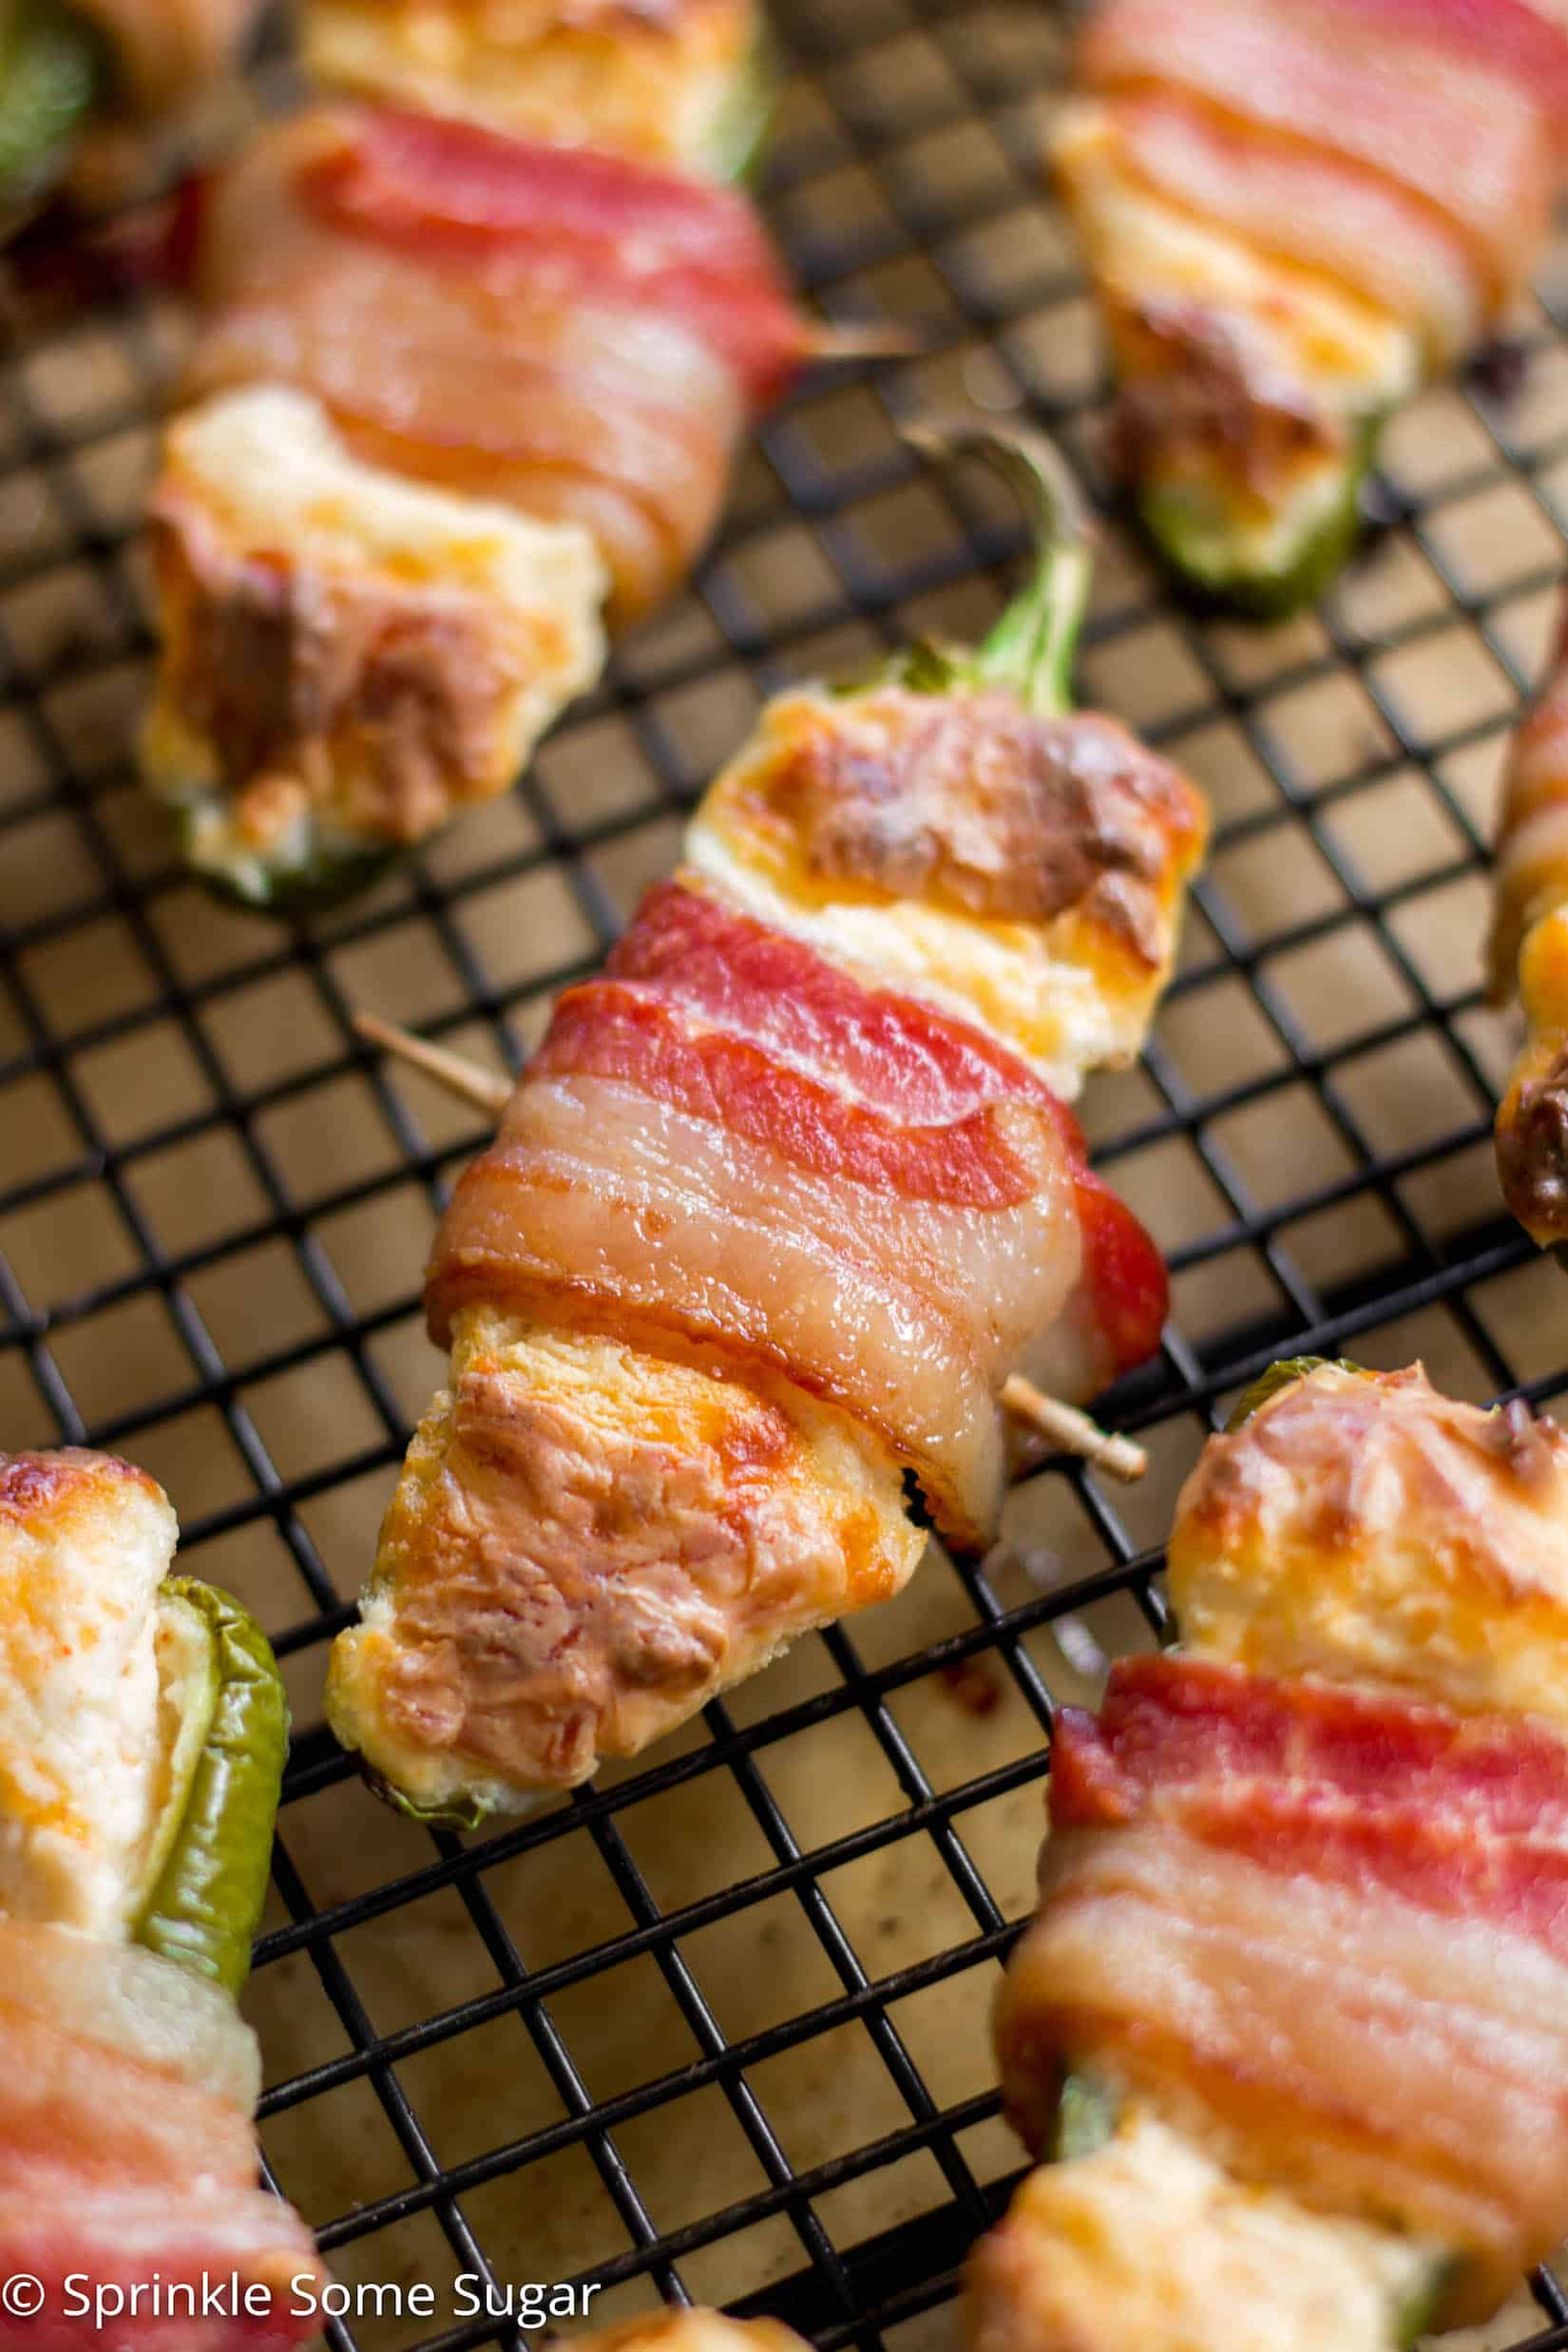 Bacon-Wrapped Jalapeño Poppers - Creamy, cheesy filled jalapeños are wrapped in a layer of juicy, crispy bacon. Talk about mouth-watering!